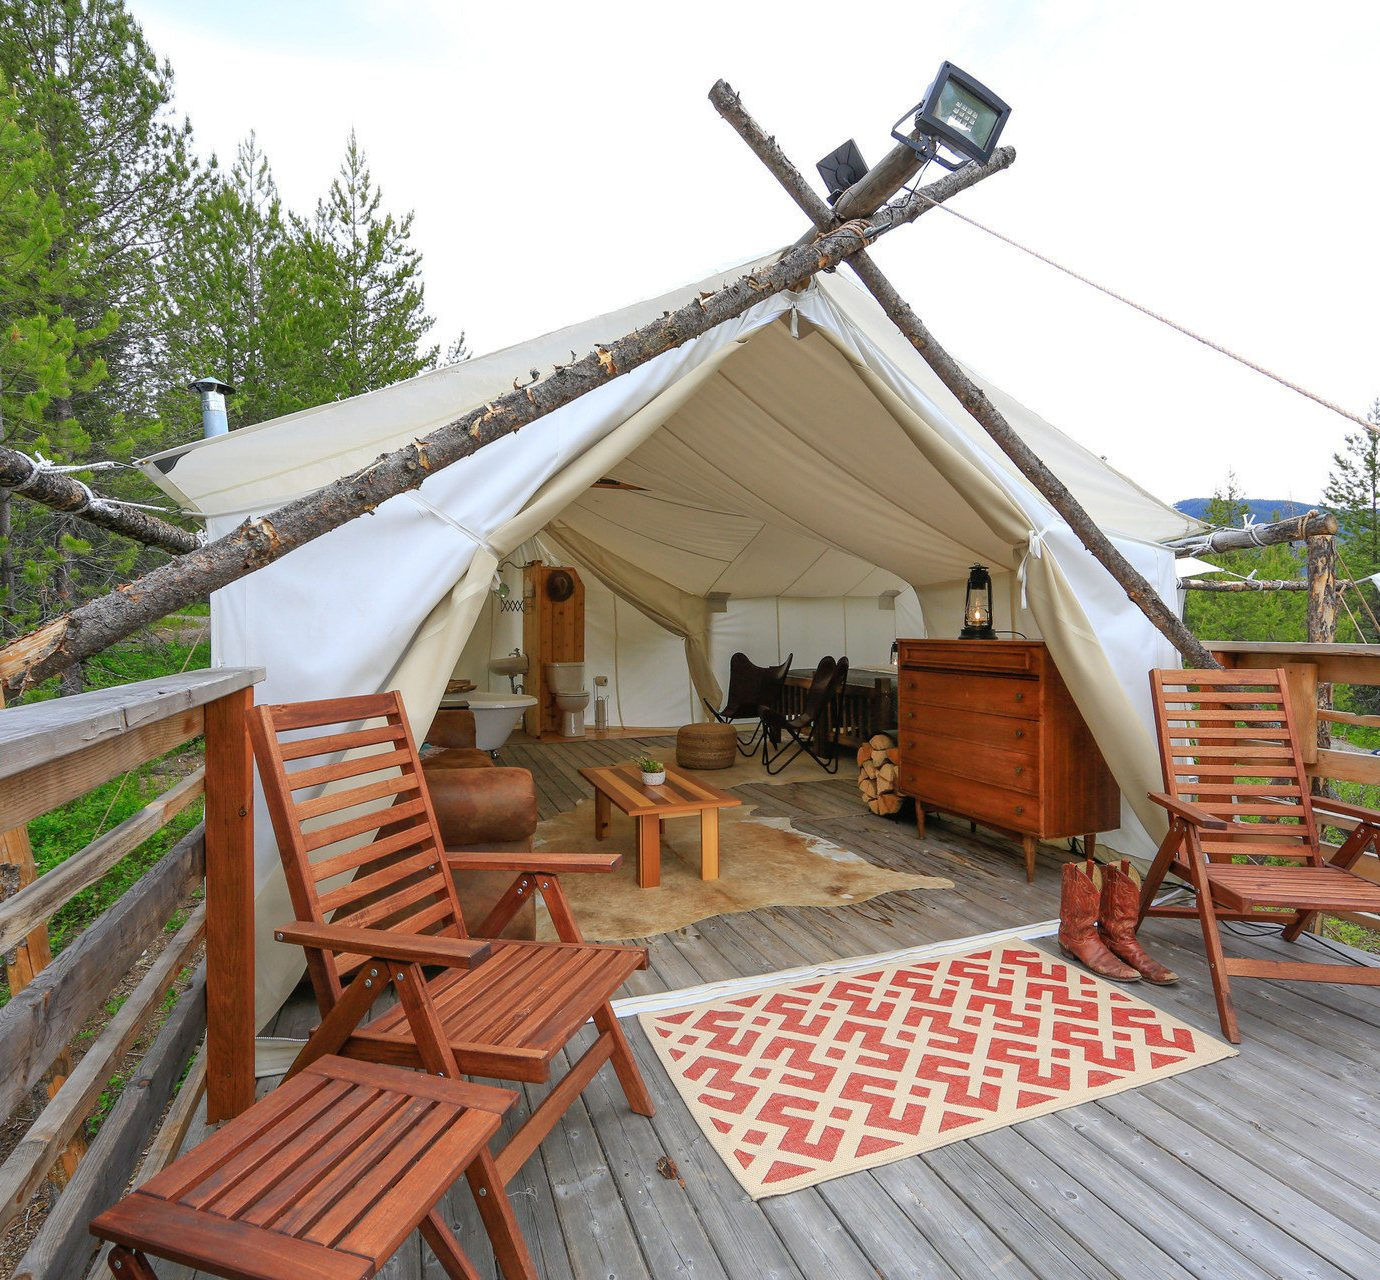 Family Travel National Parks Trip Ideas sky tree wooden chair property cottage hut Resort outdoor structure log cabin Villa roof